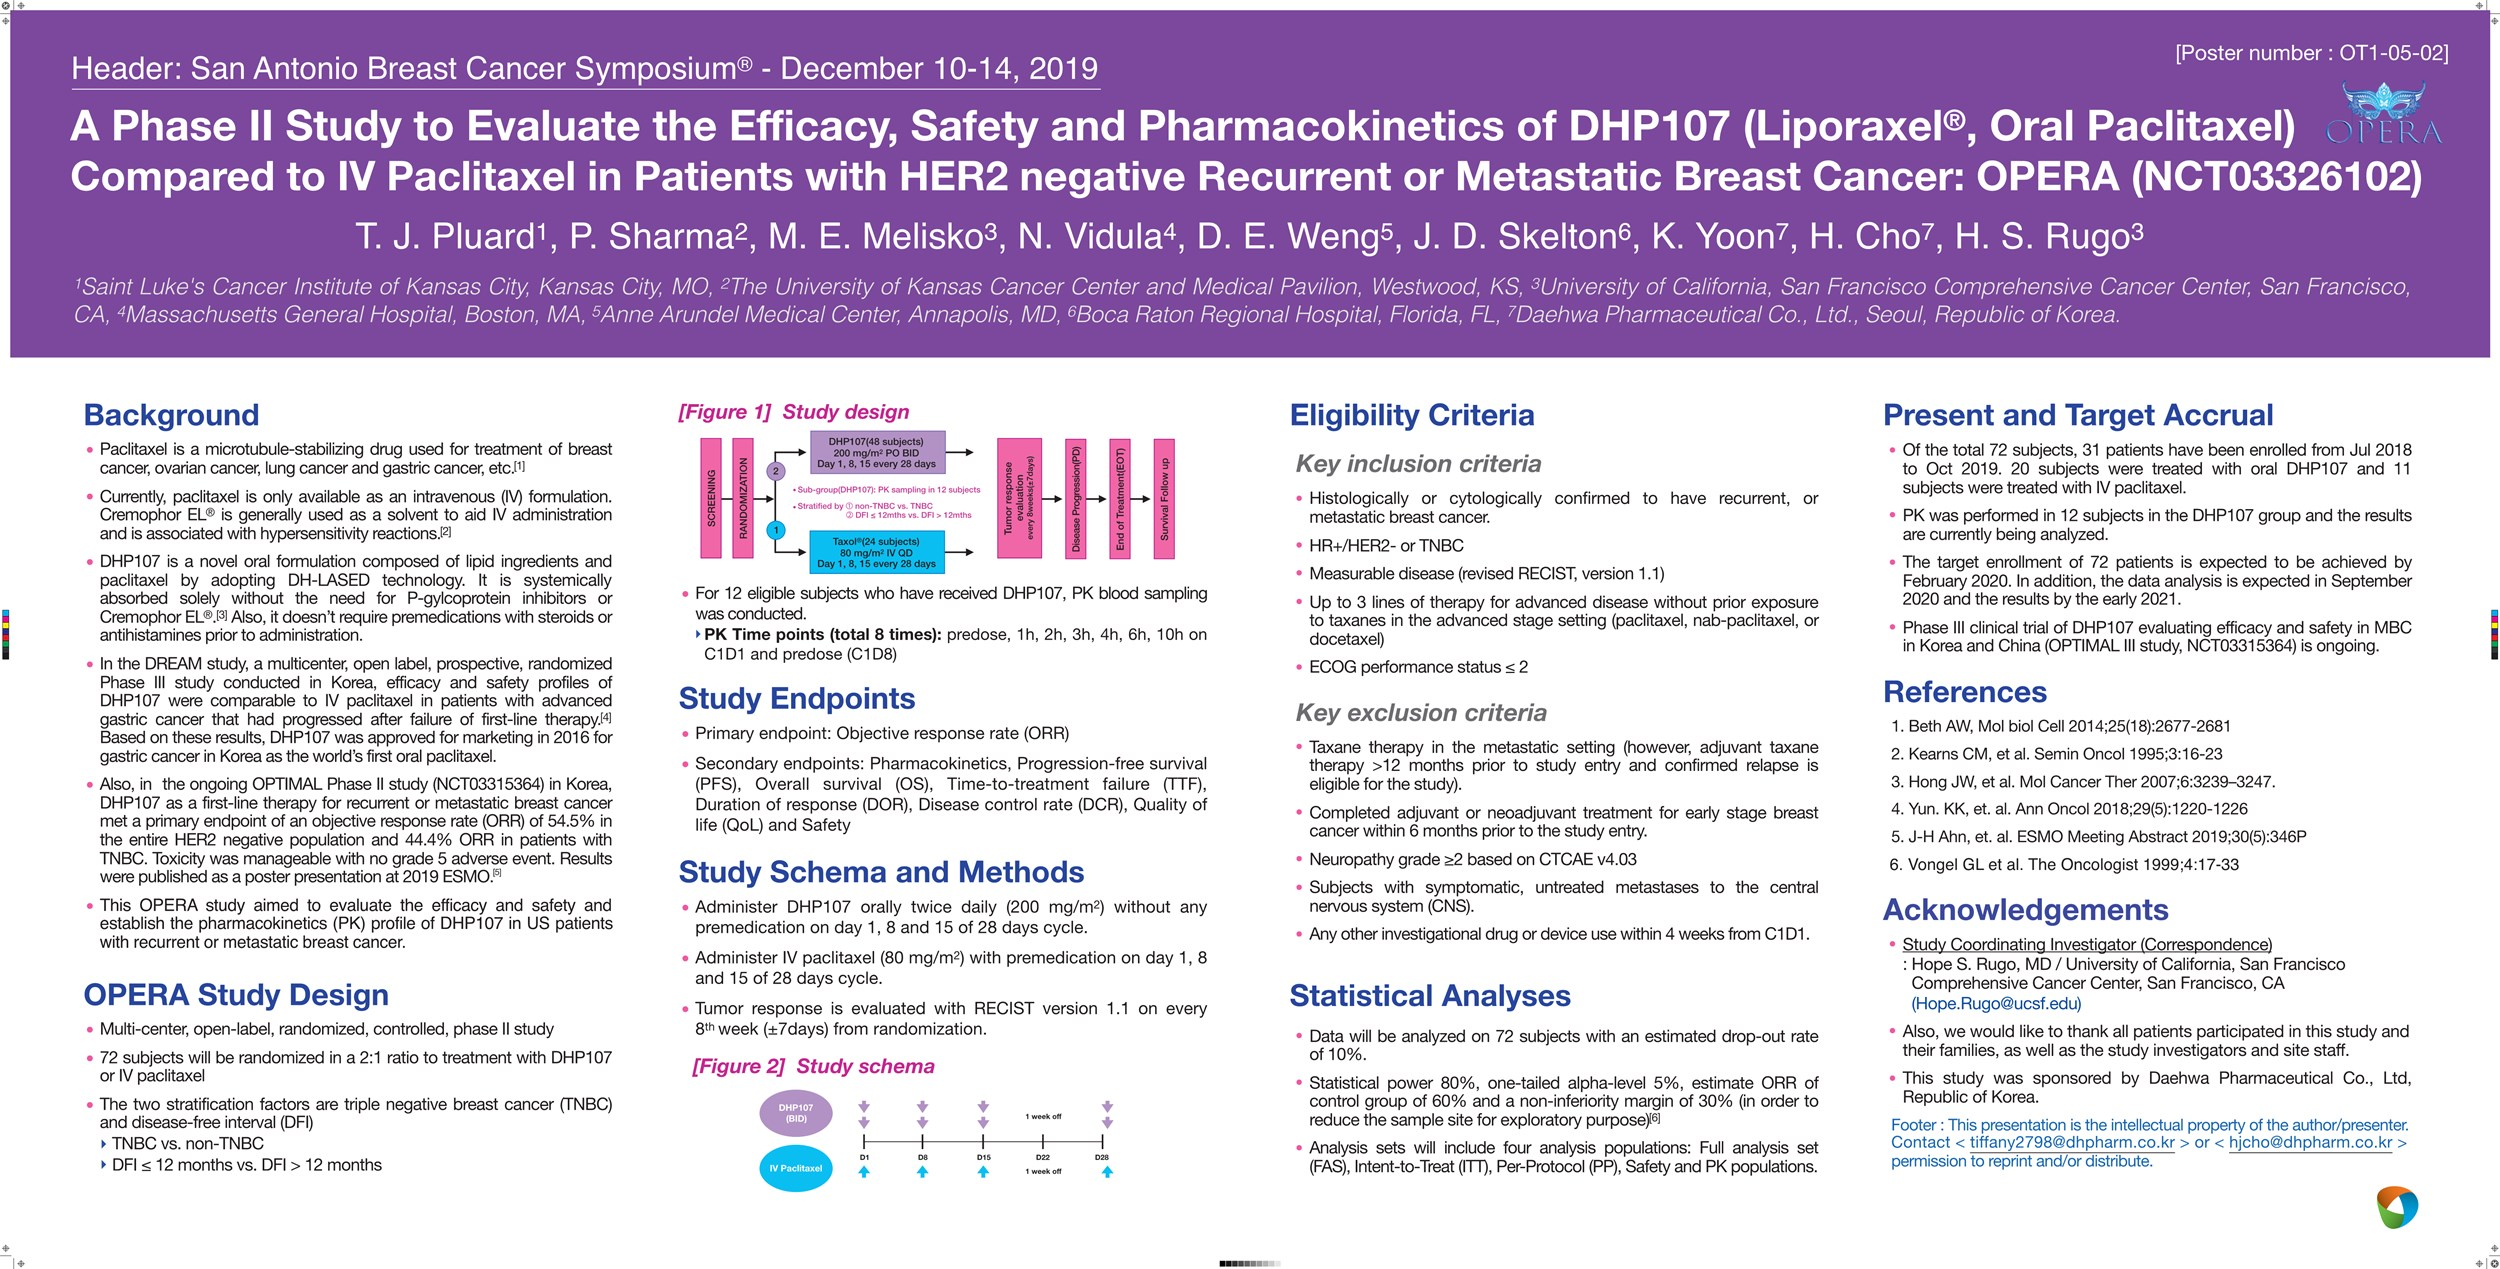 A phase II study to evaluate the efficacy, safety and pharmacokinetics of DHP107 (Liporaxel®, oral paclitaxel) compared to IV paclitaxel in patients with recurrent or metastatic breast cancer: OPERA (NCT03326102)